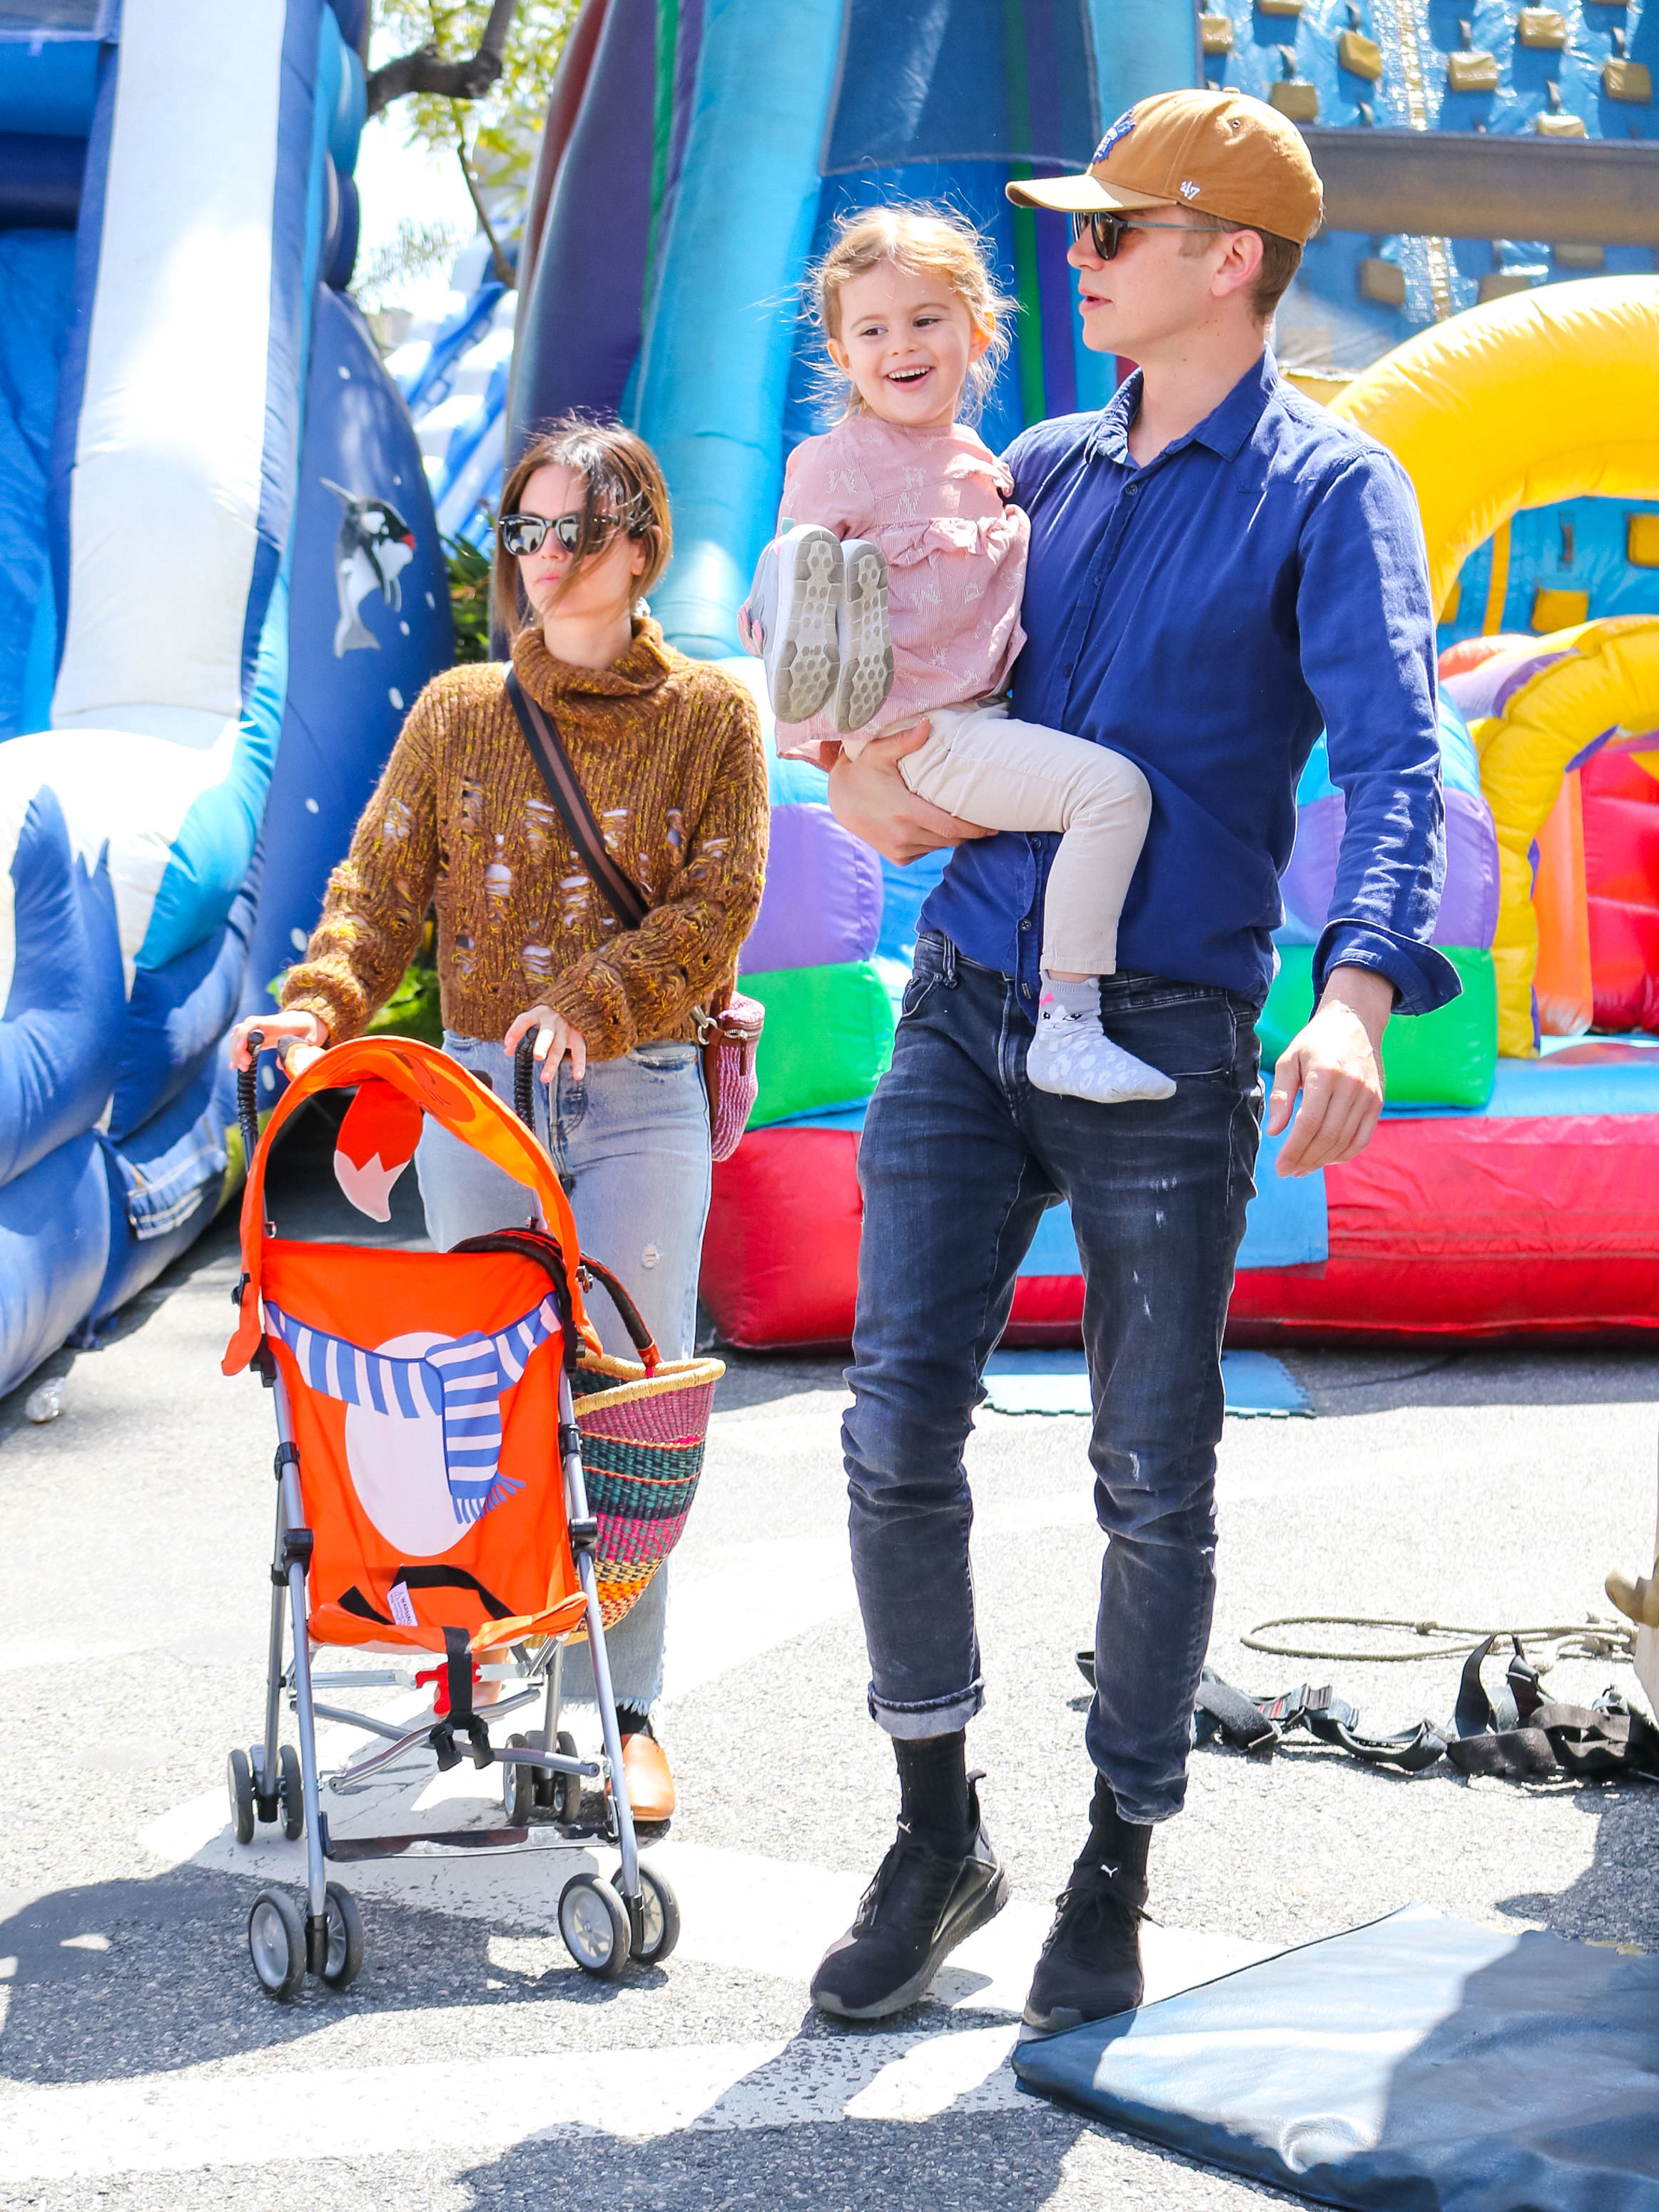 Rachel Bilson, Hayden Christensen and daughter Briar Rose Christensen spent the day at the farmer's market in Studio City, CA on May 5, 2019.